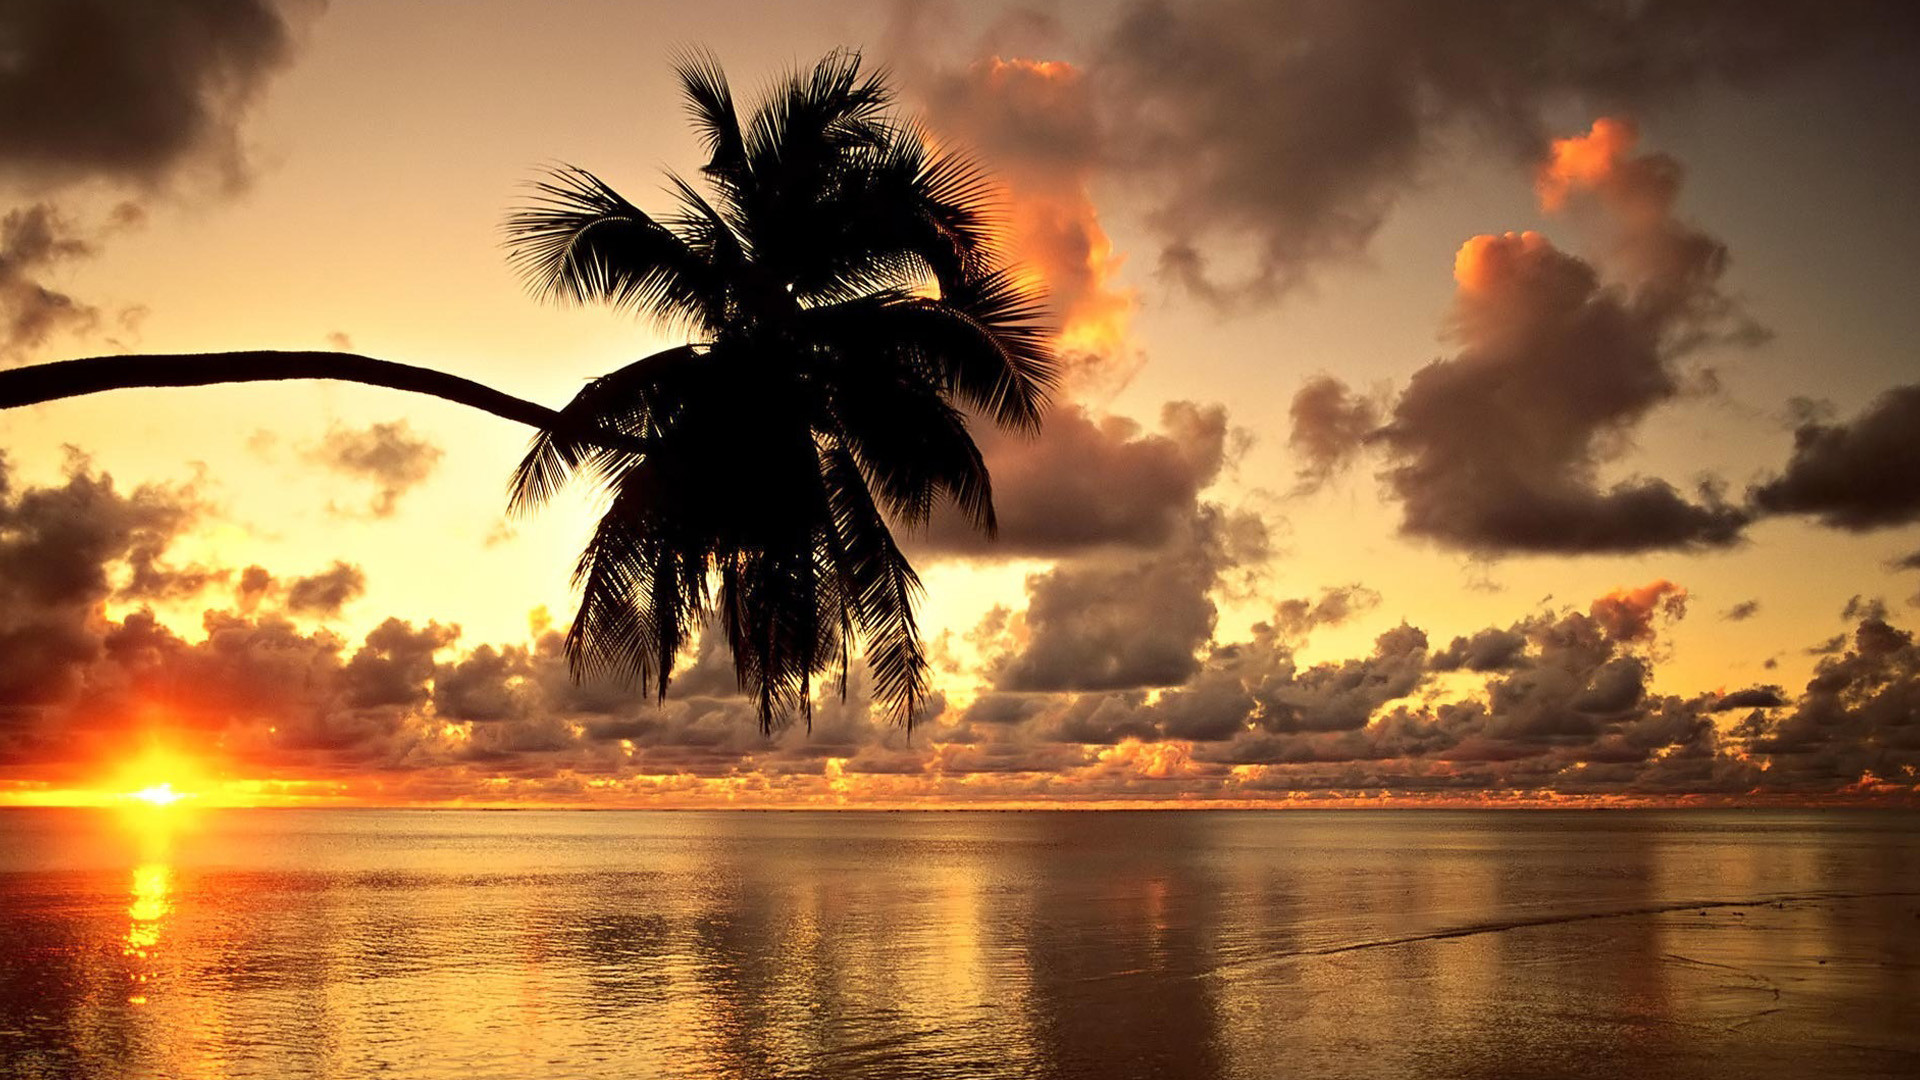 Tropical sunset beach beautiful scenery Wallpapers, Beach Pictures .